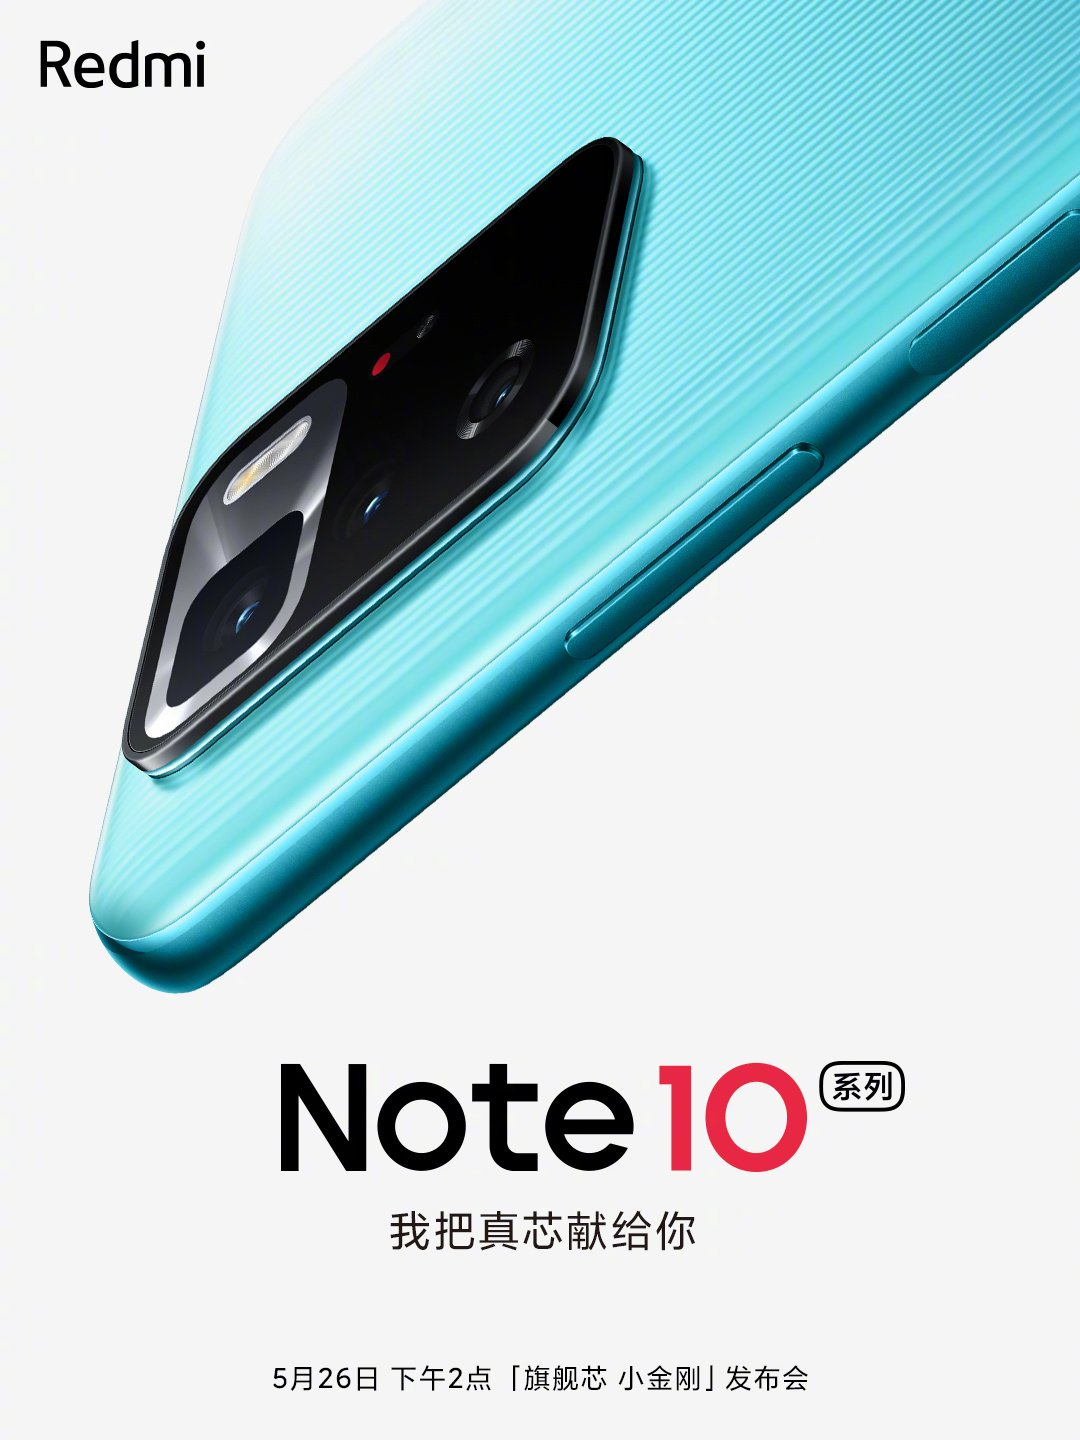 Redmi Note 10 5G is Launching on May 26 With a New Camera